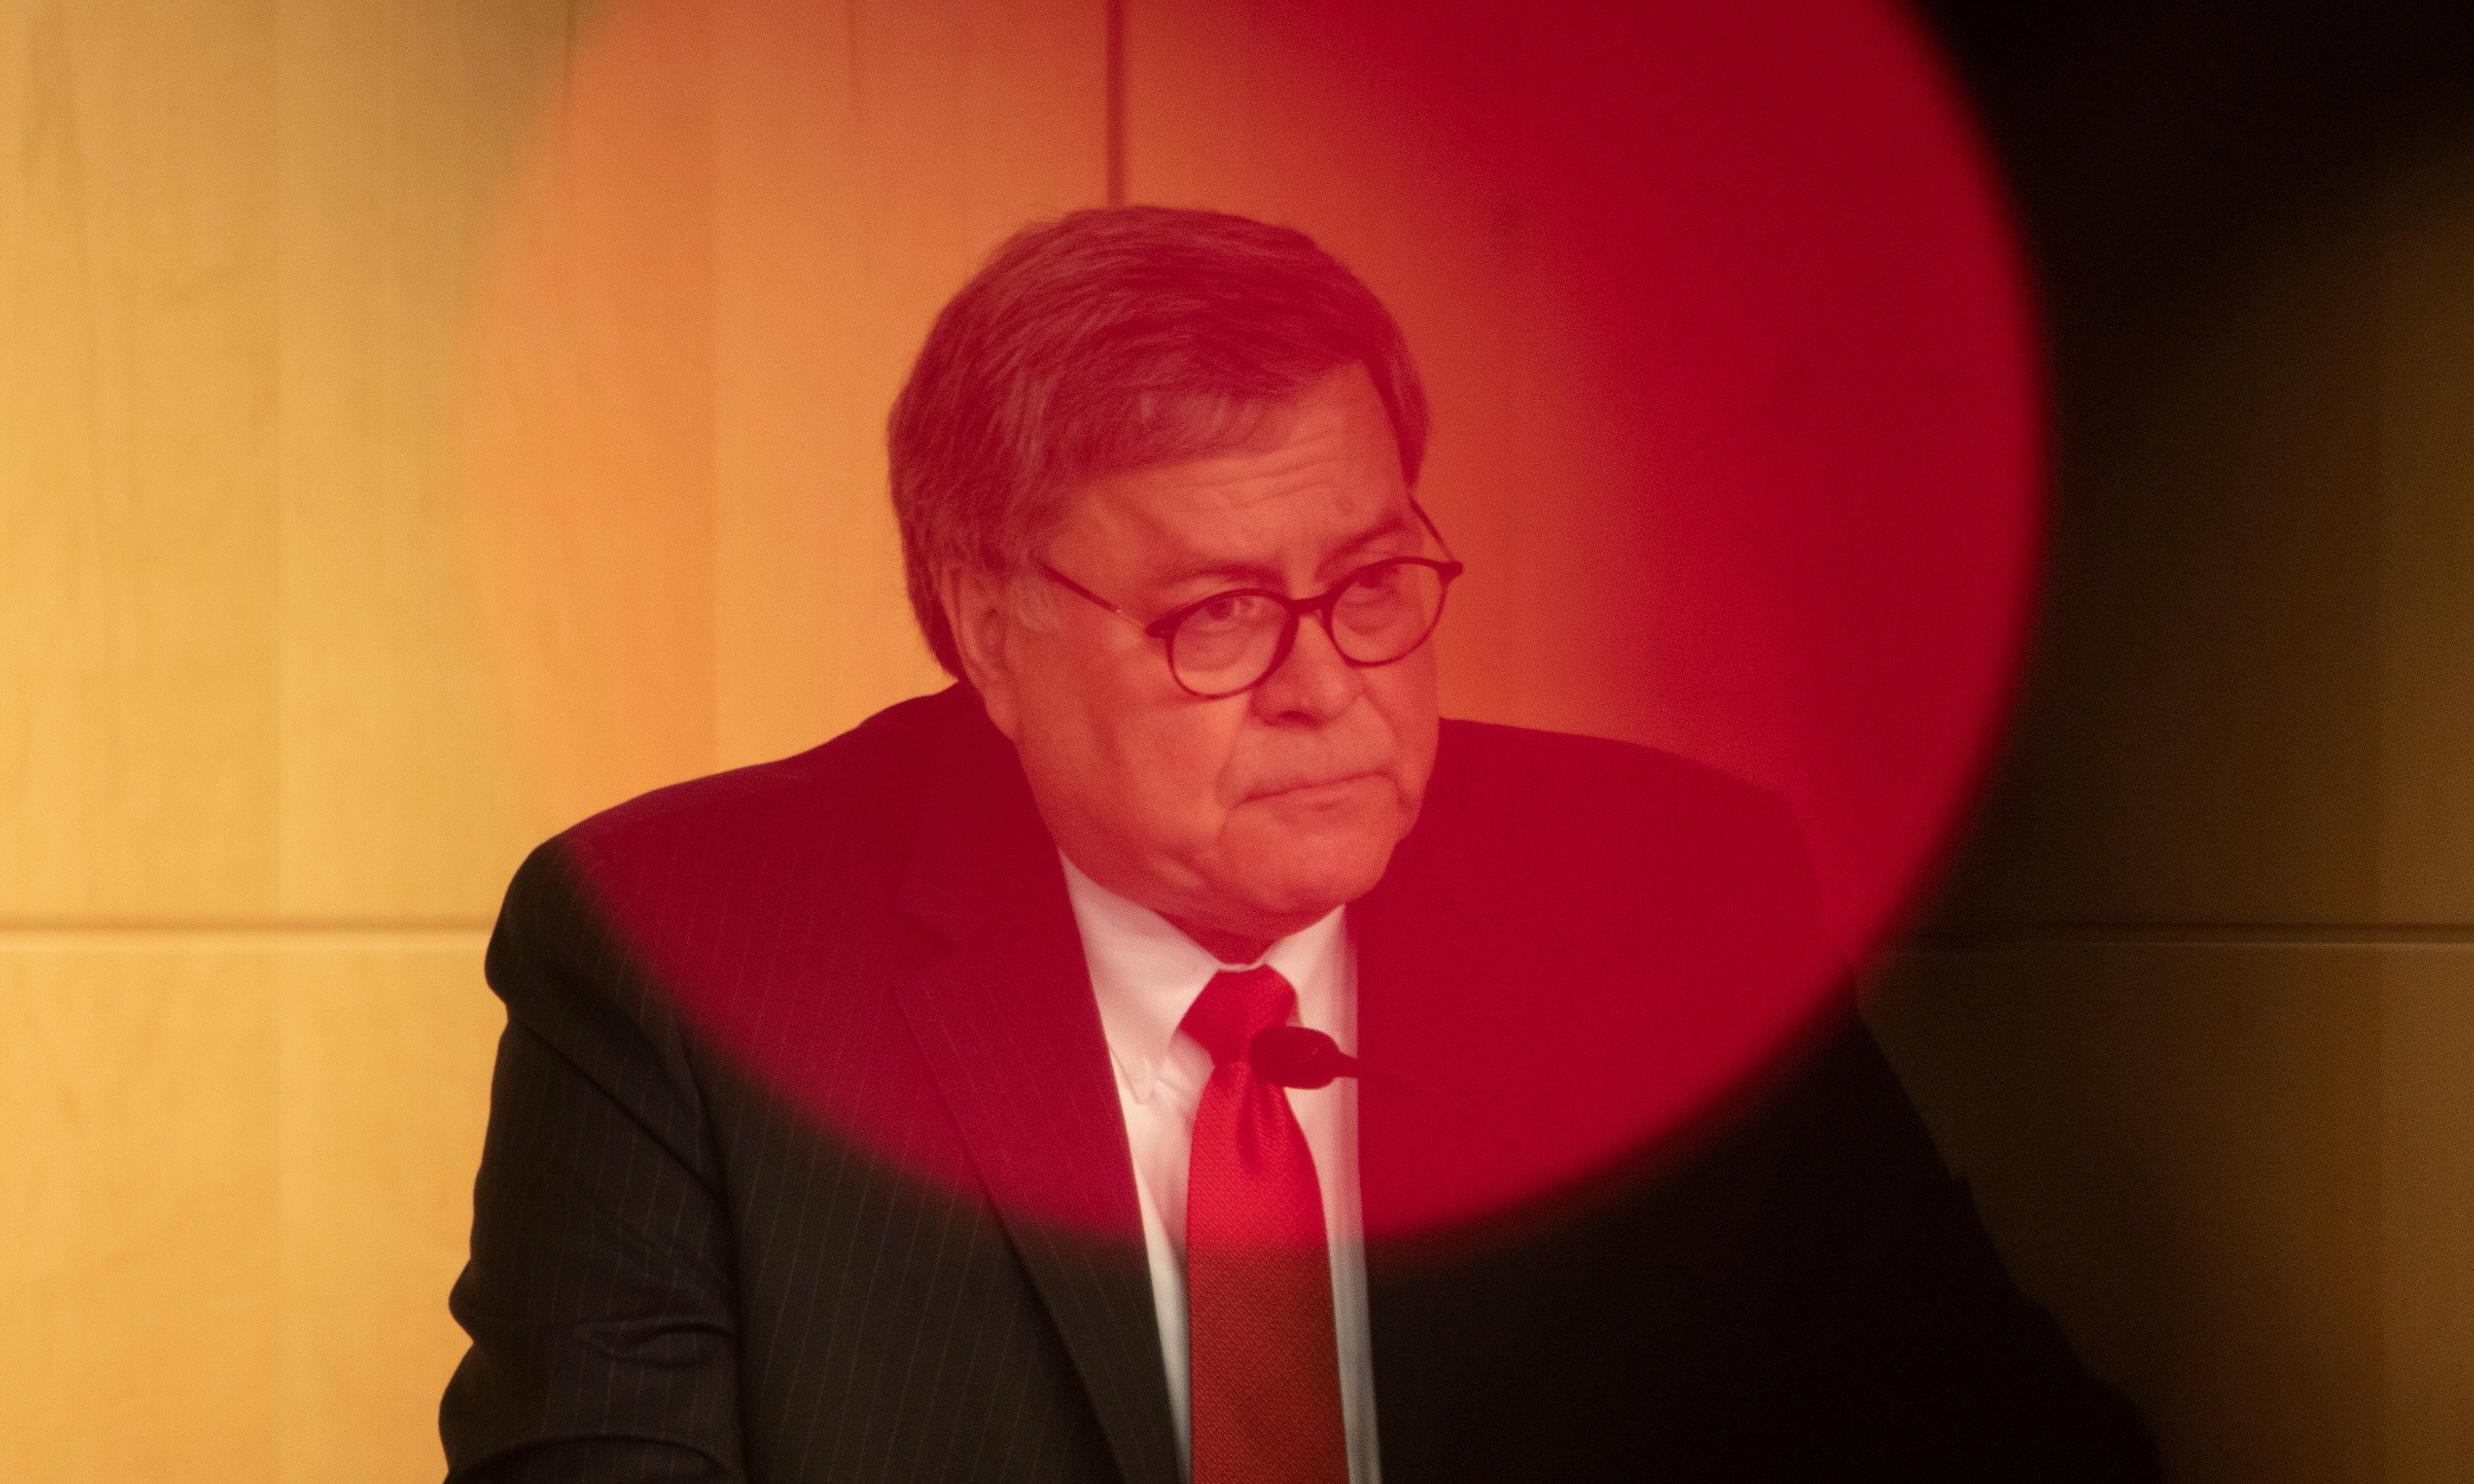 William Barr: how the attorney general became Trump's enabler-in-chief